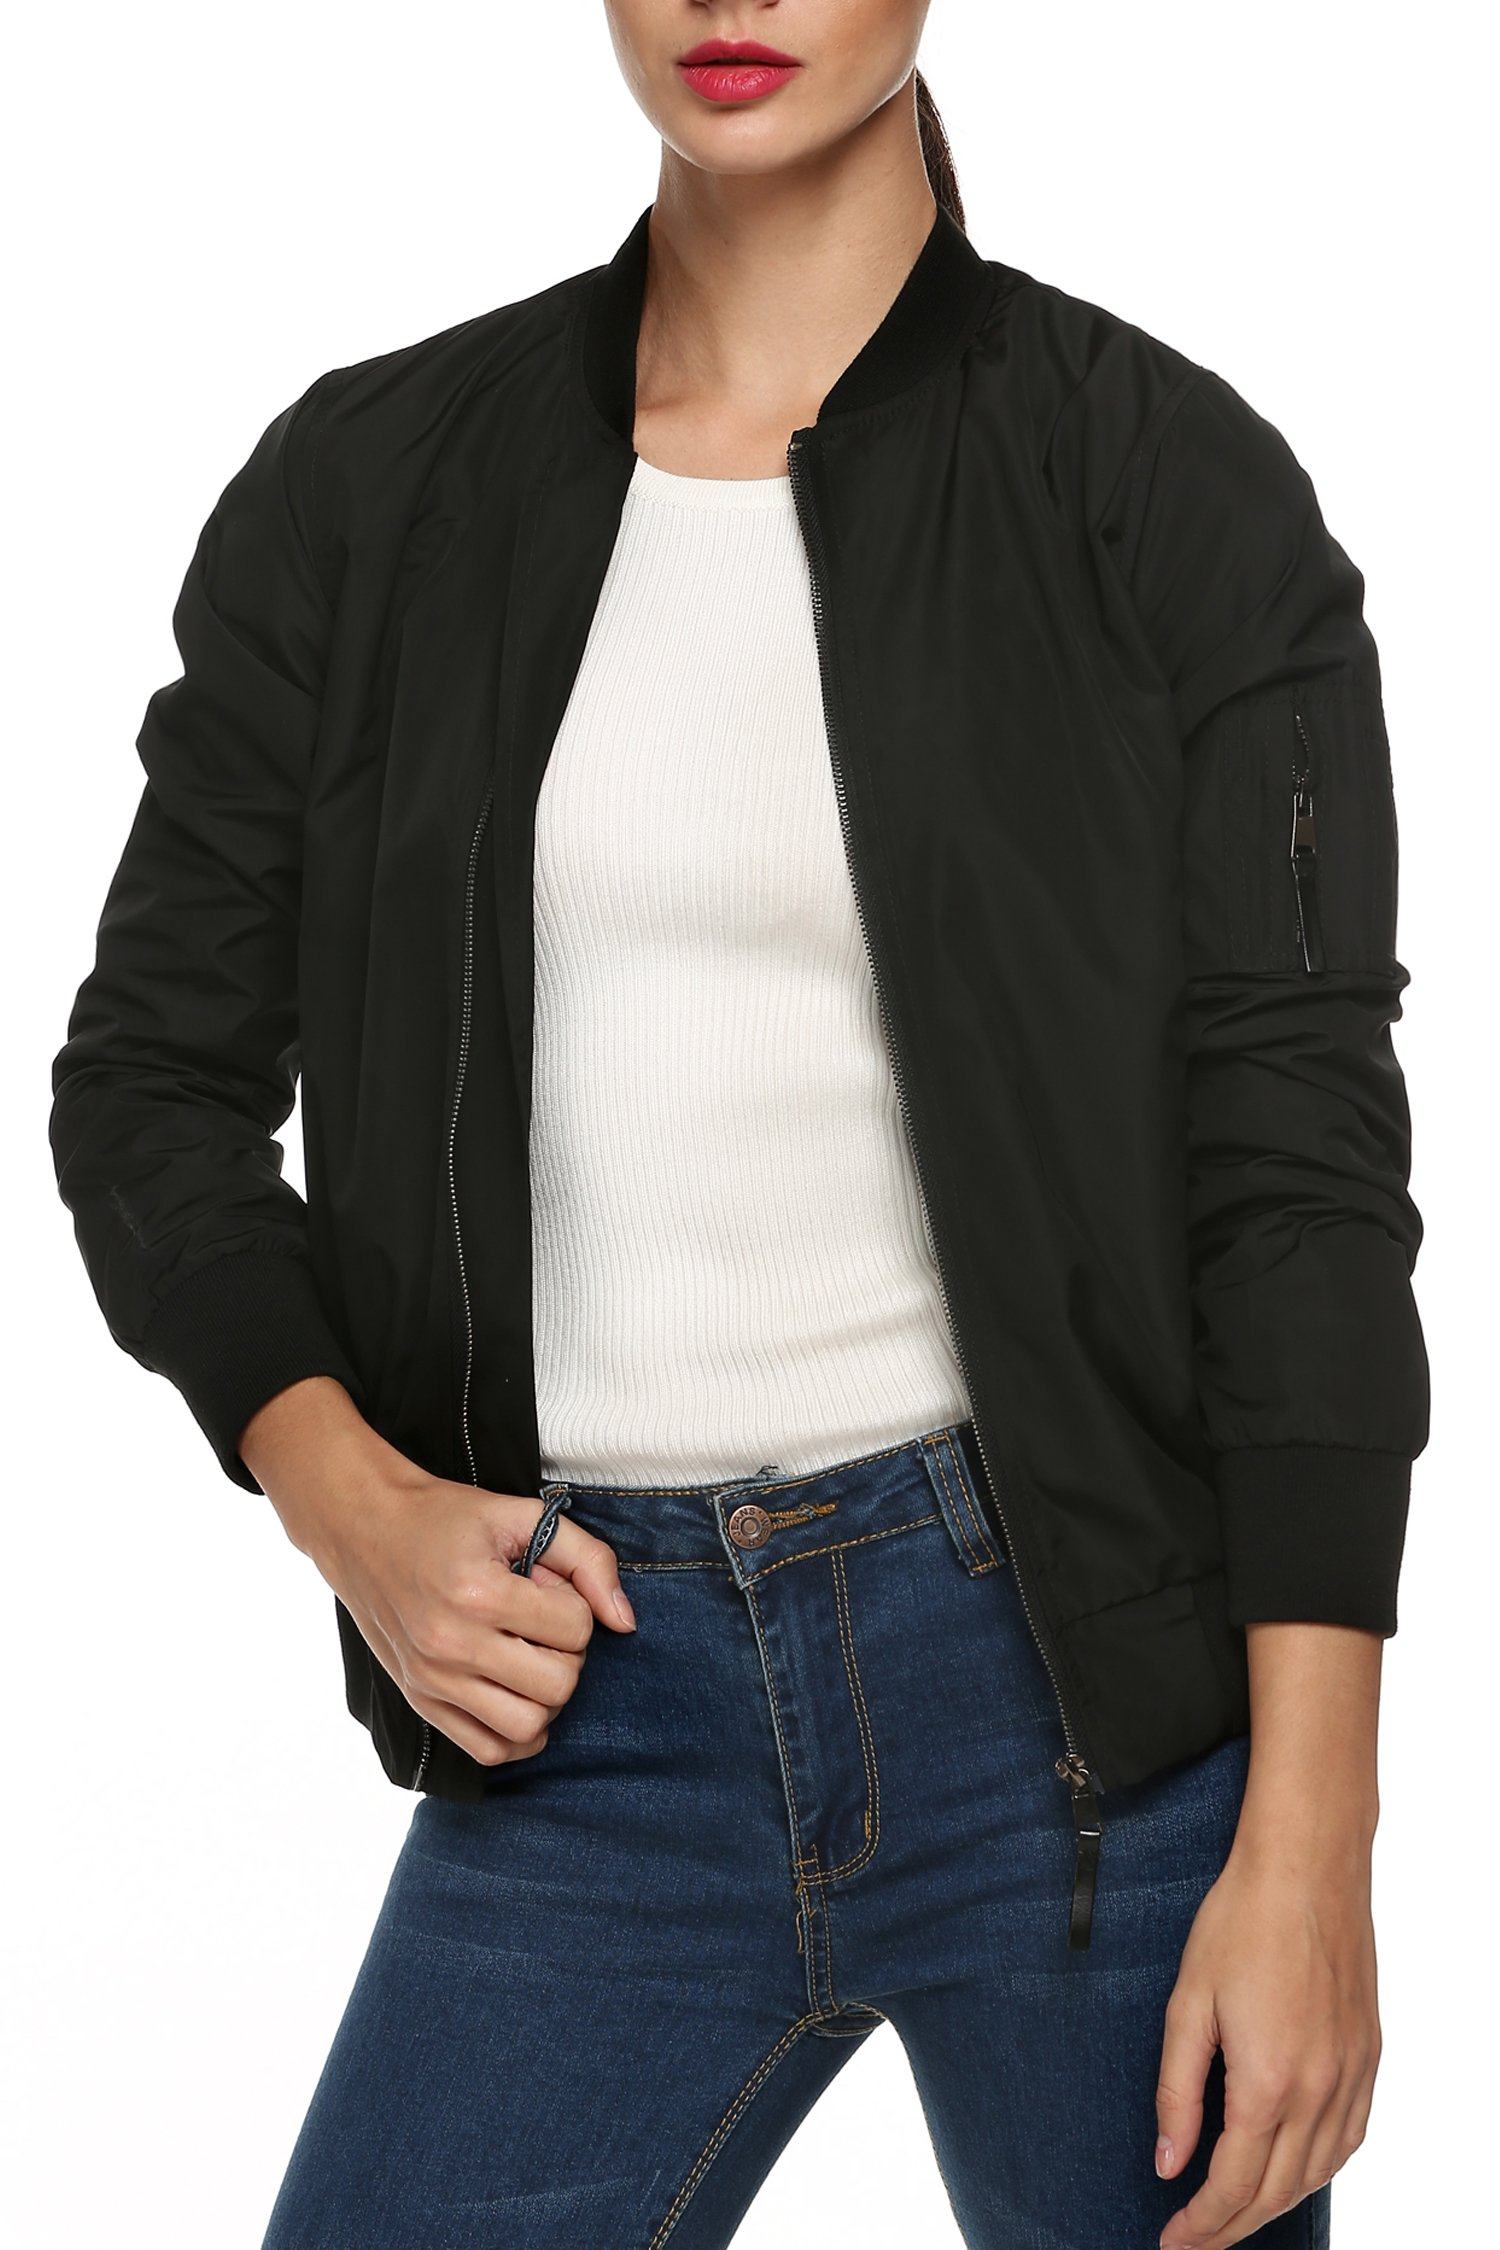 Zeagoo Womens Classic Quilted Jacket Short Bomber Jacket Coat, Black New, Large